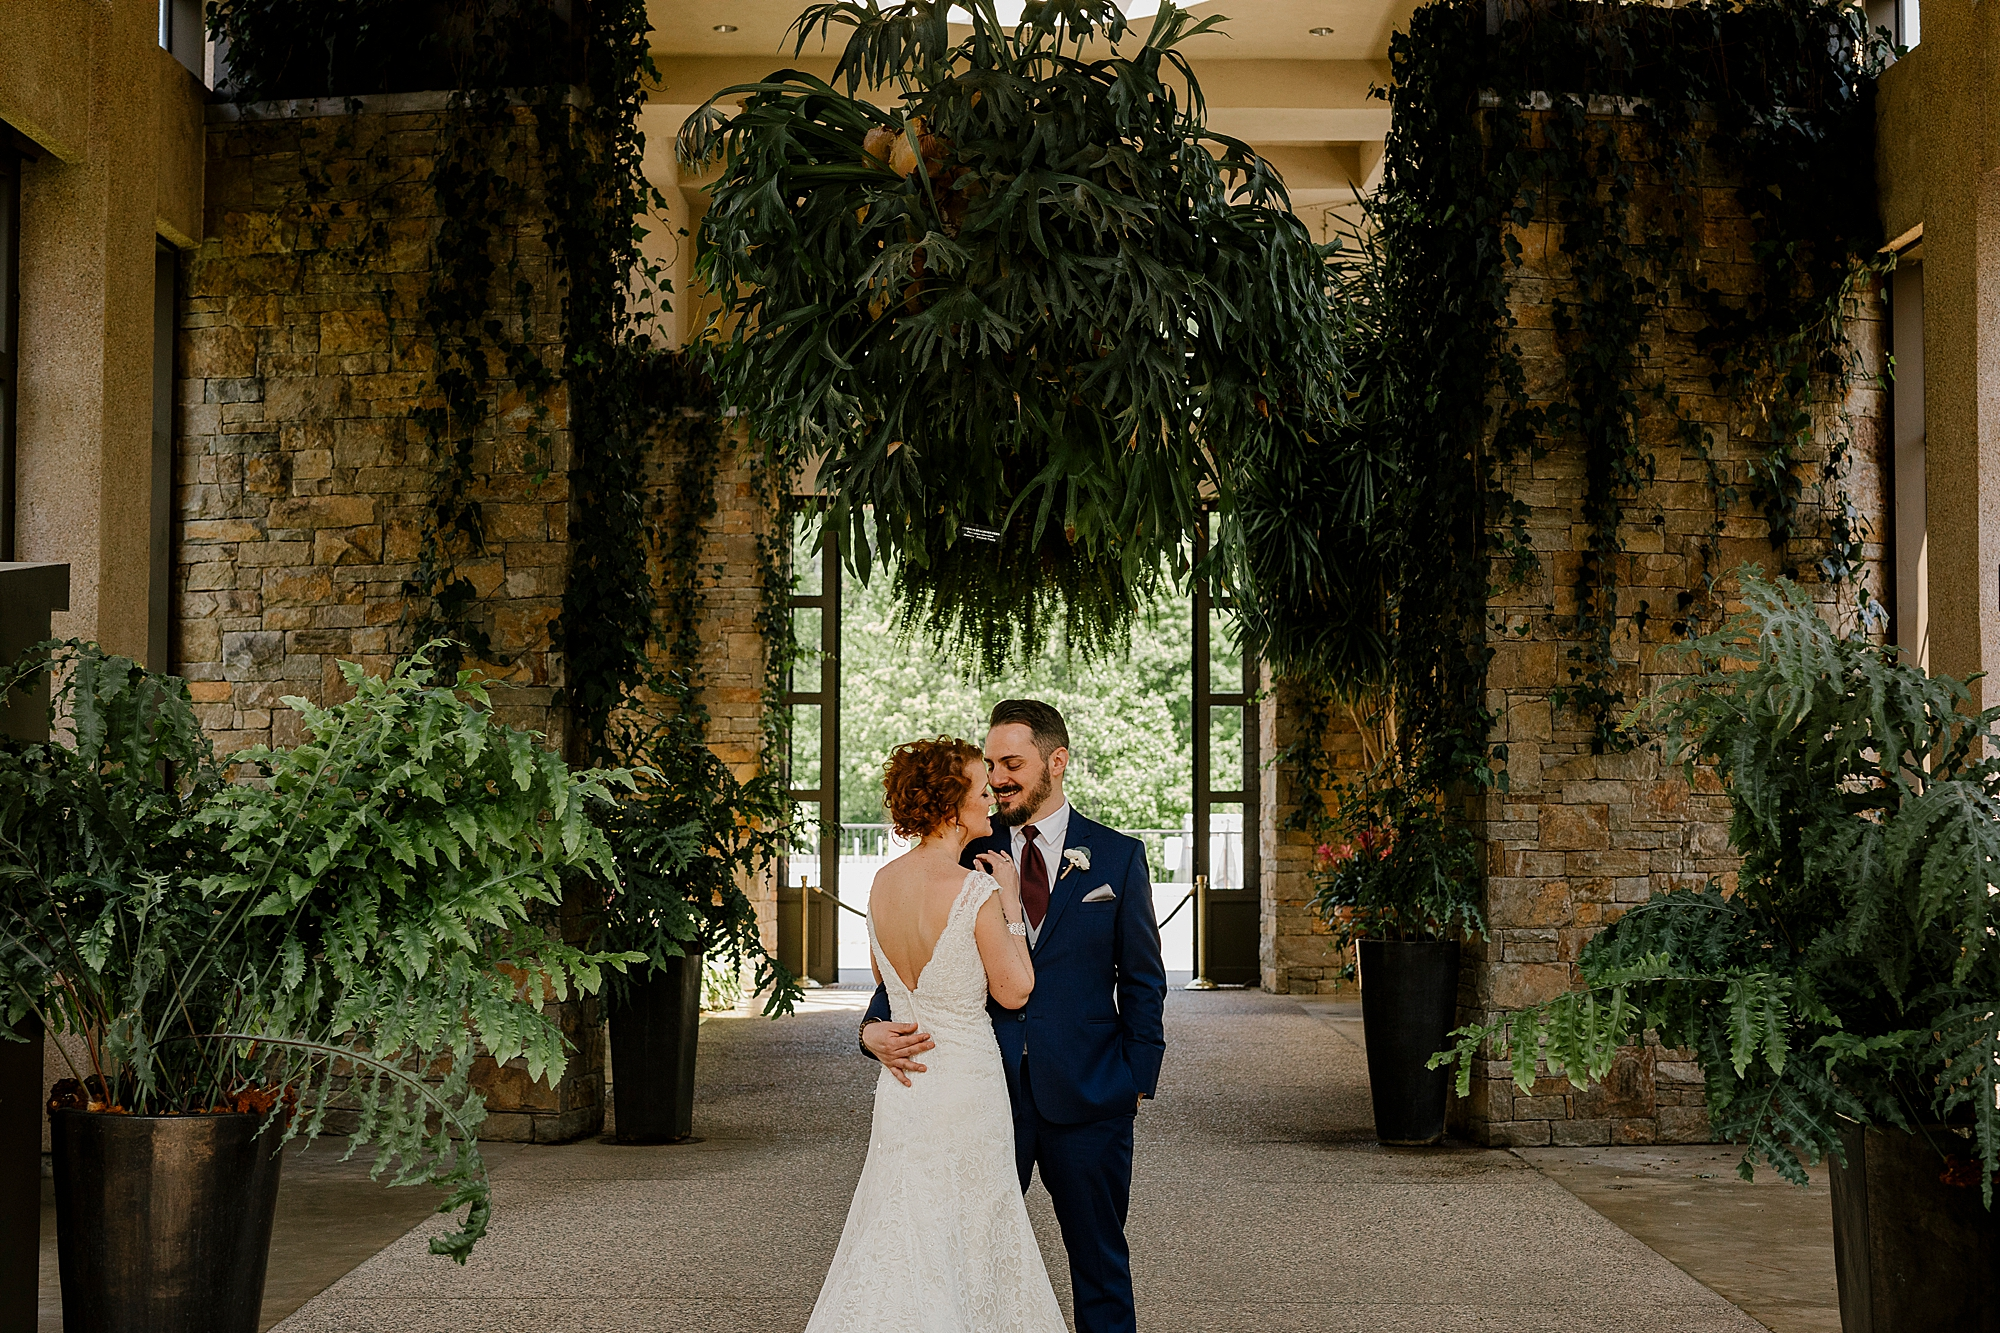 Megan and Daniel_Northbrook_Marketplace_Longwood_Gardens_Chester_County_Unionville_Love_by_Joe_Mac_Wedding_photography__0051.jpg